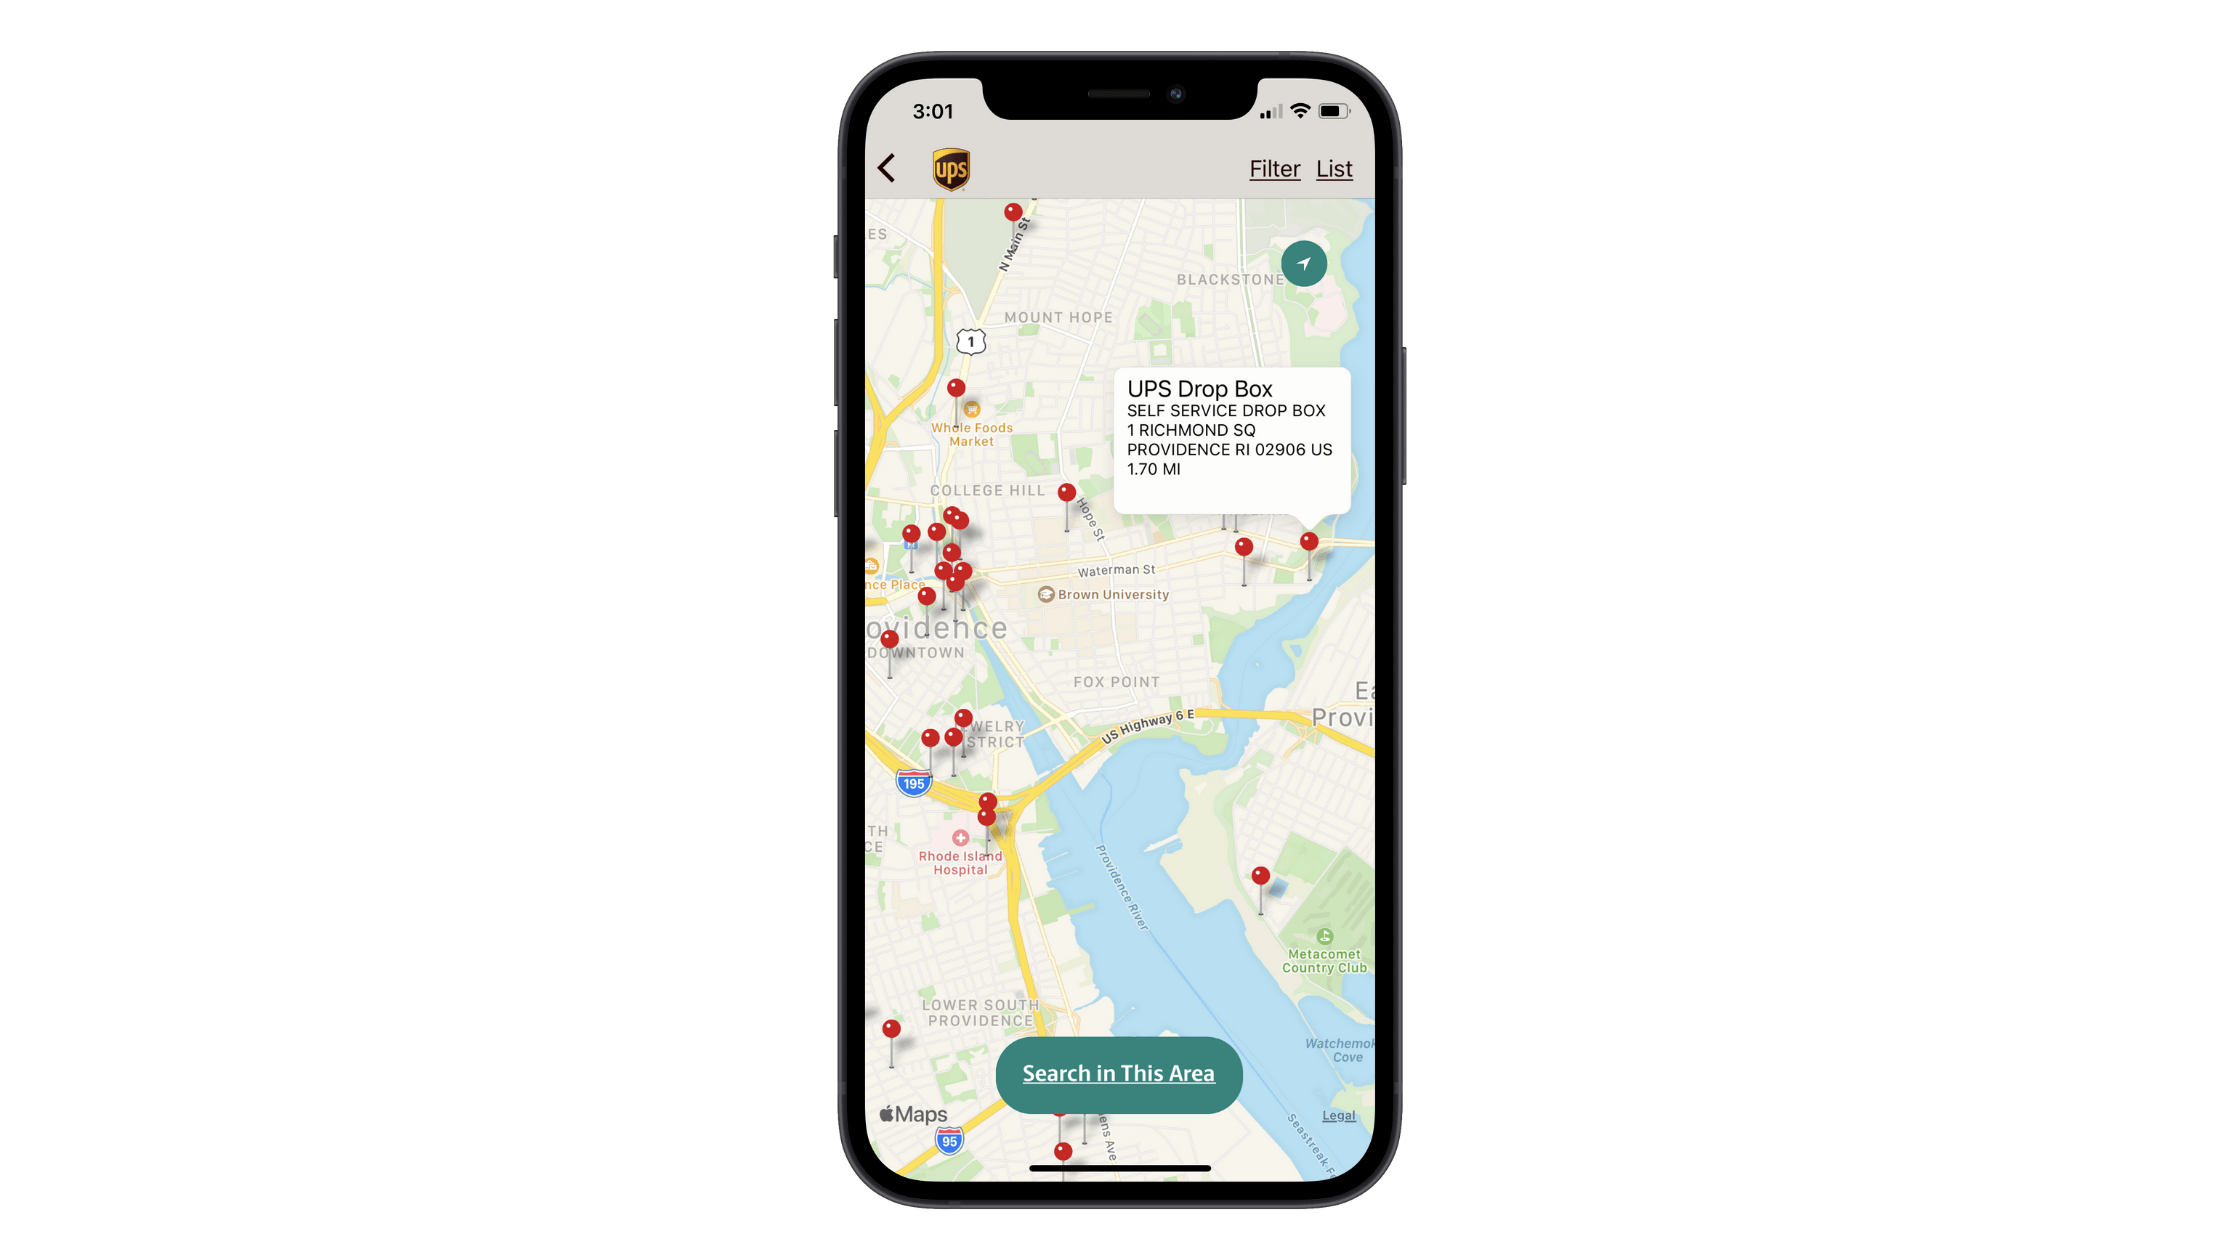 UPS mobile app users can map their location search results. Each of the red pins can be clicked to reveal corresponding information about the type of UPS location, its address, and its distance from the user.